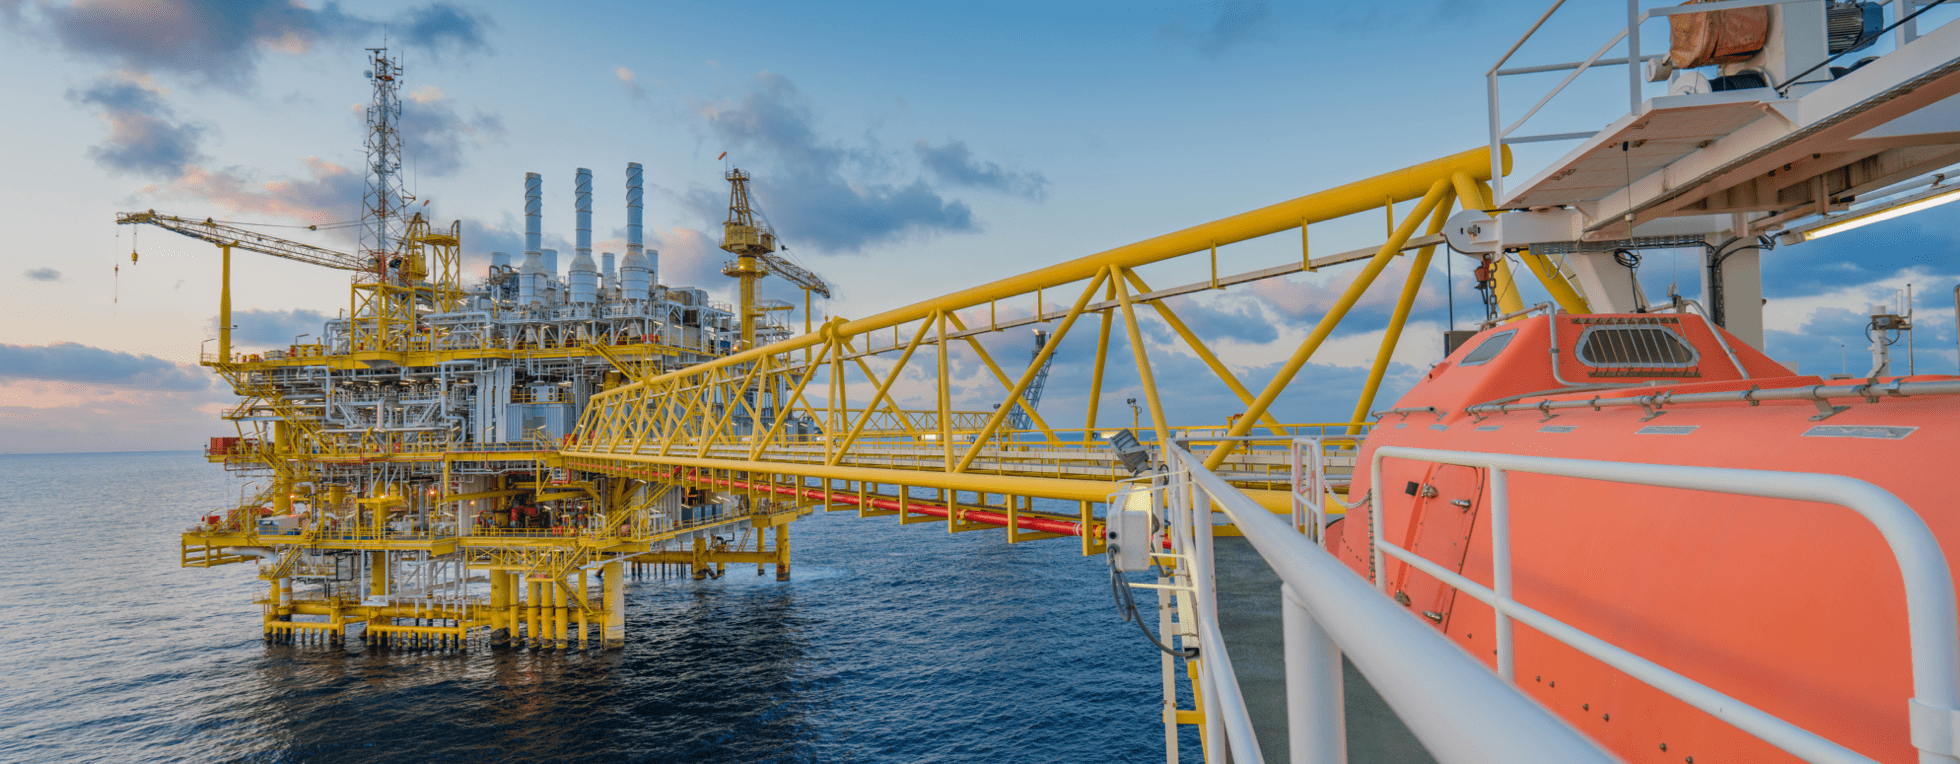 ExxonMobil Project Increases